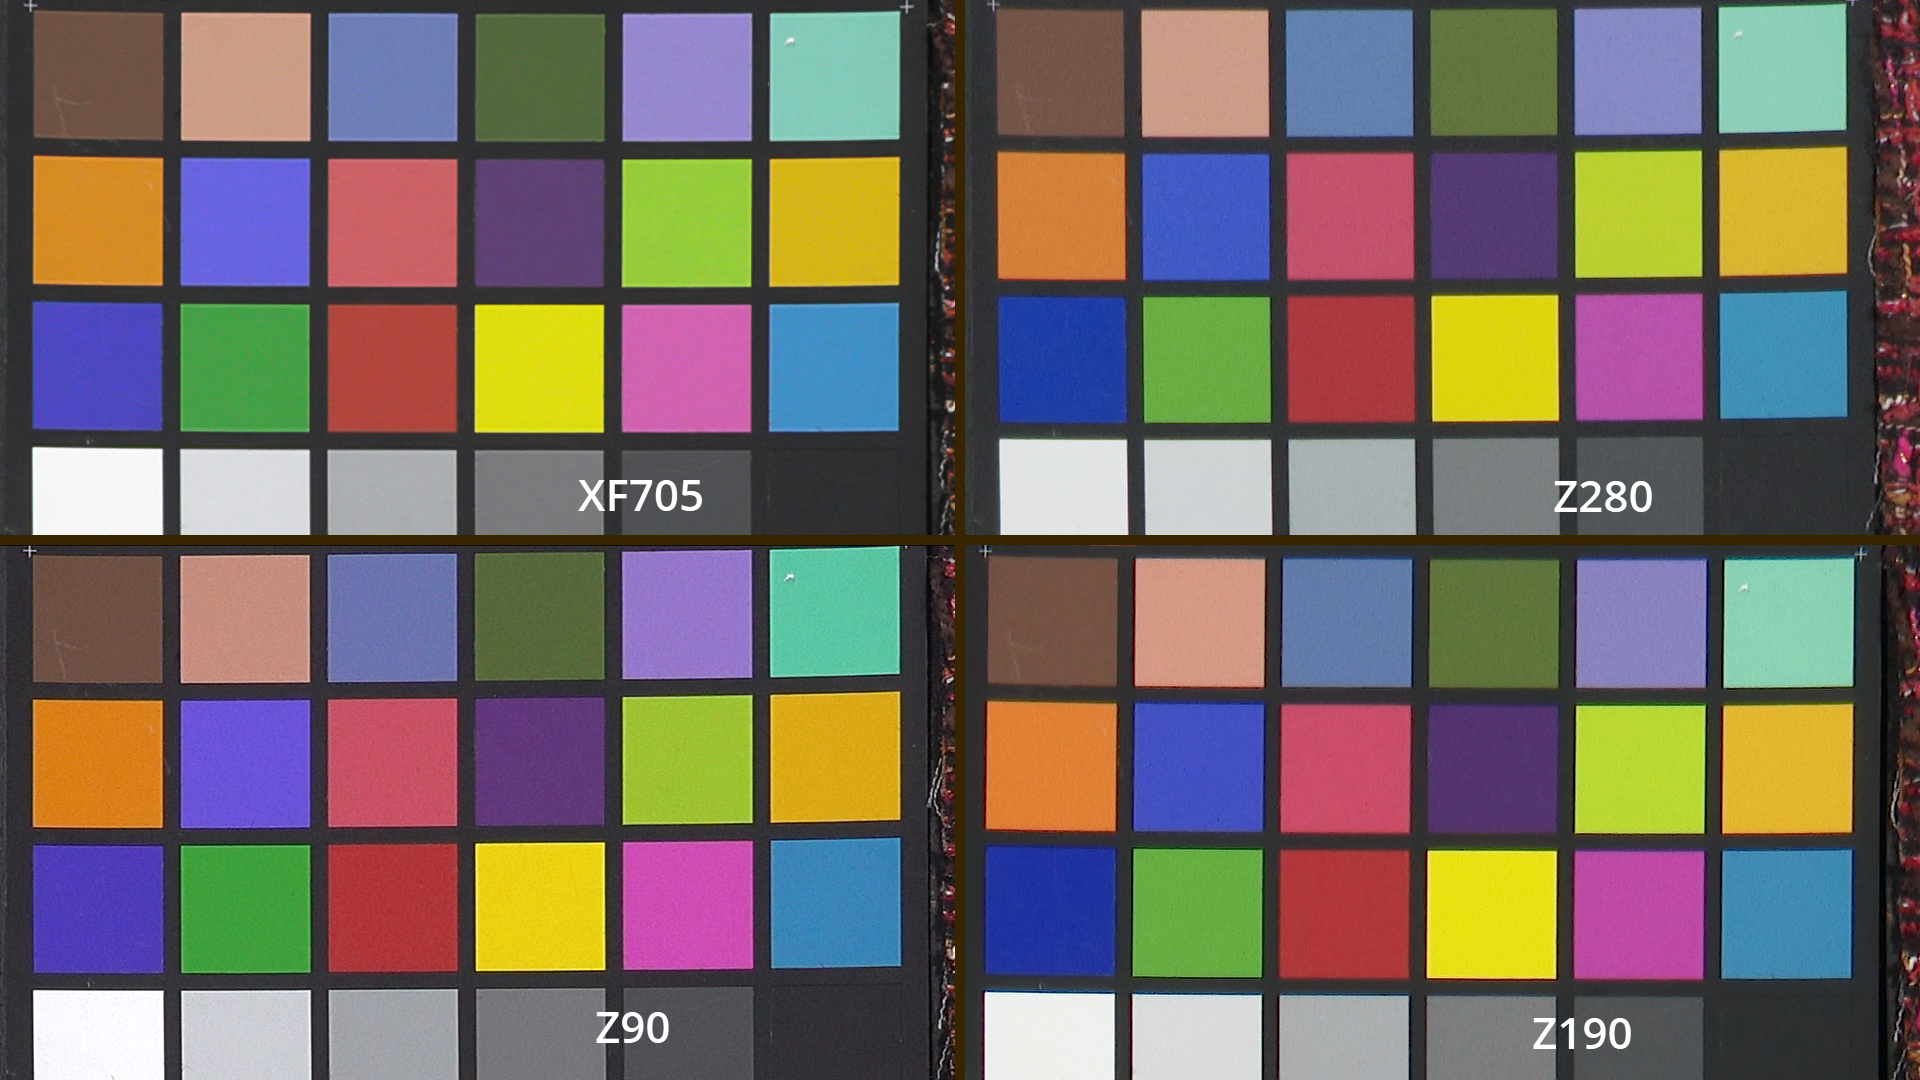 couleurs_4.3.1.png